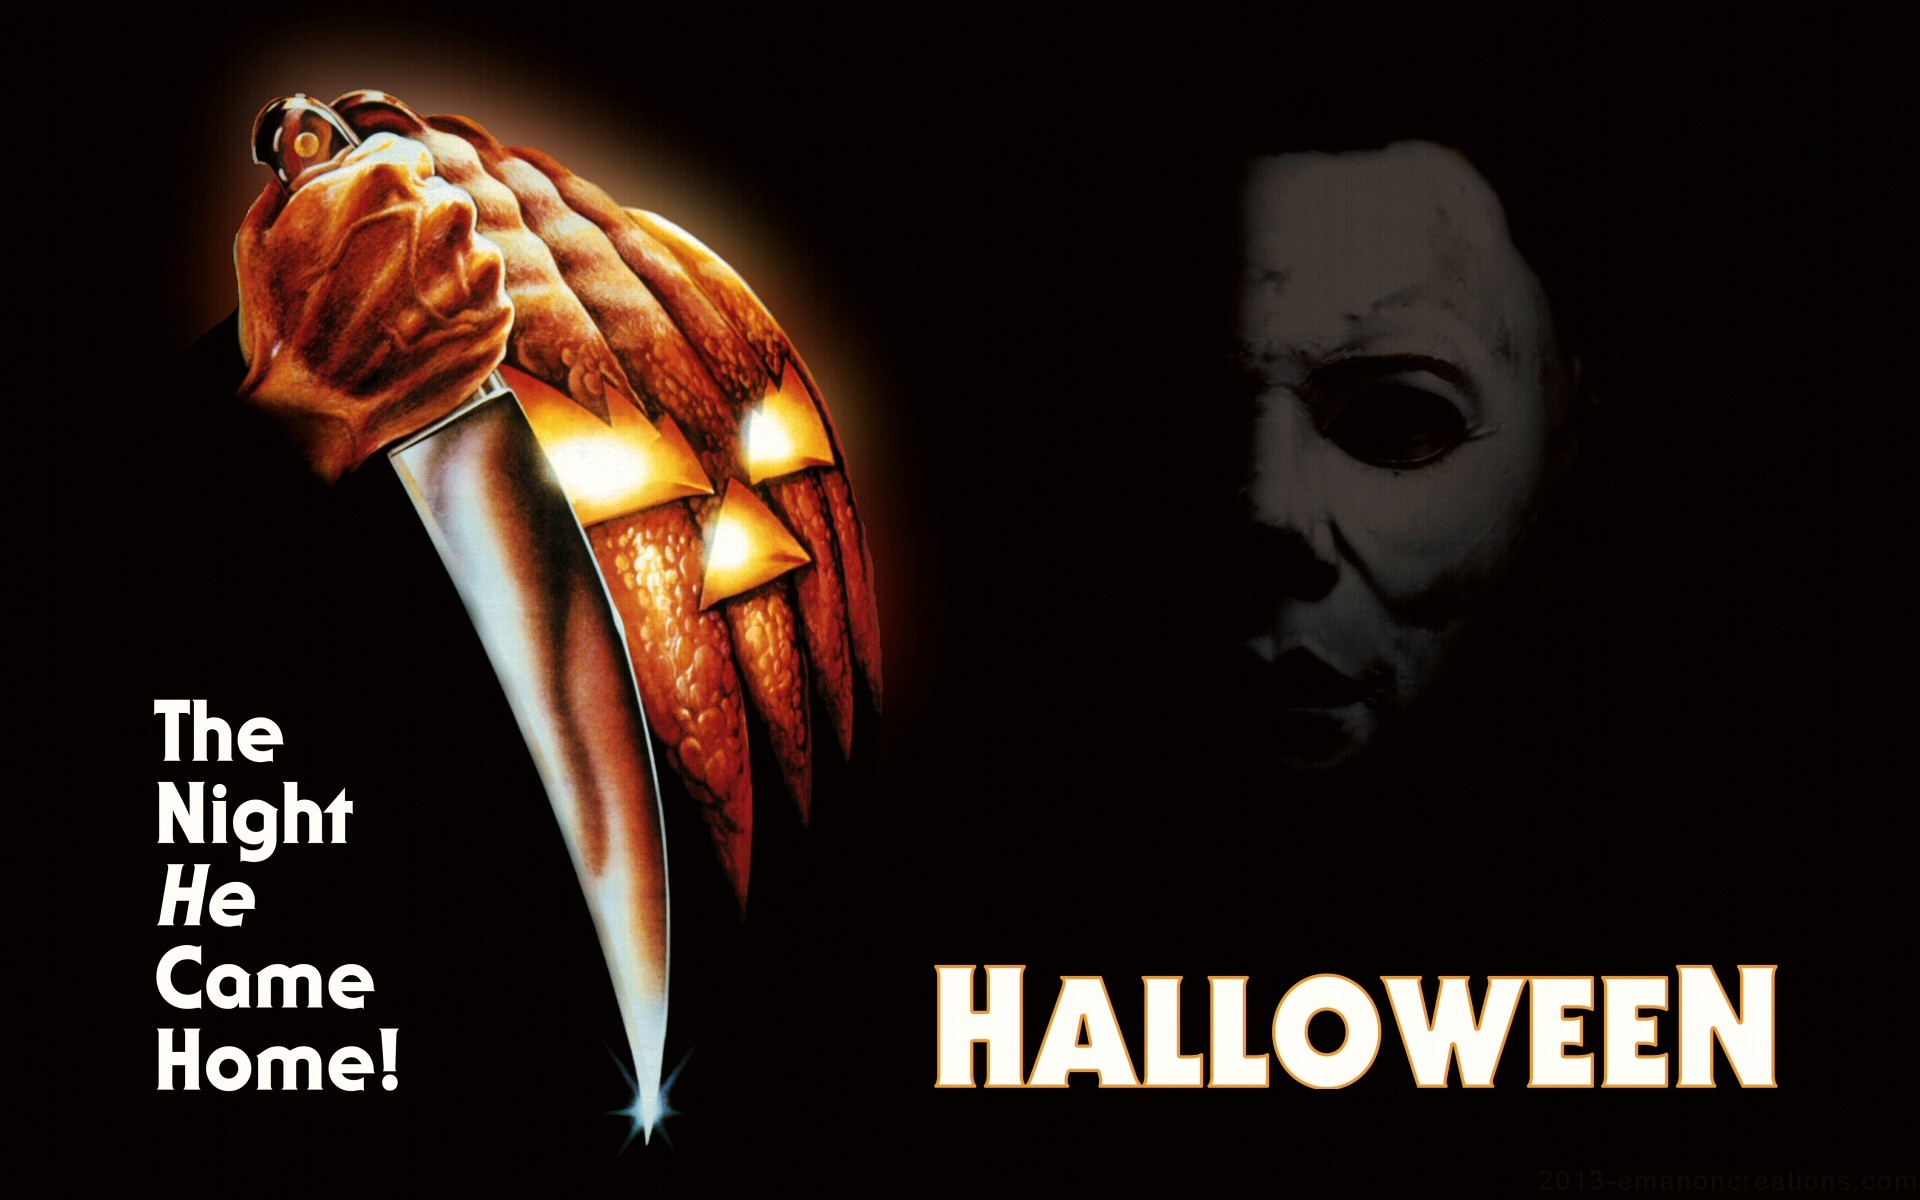 You can view, download and comment on Halloween Movie free hd wallpapers  for your desktop